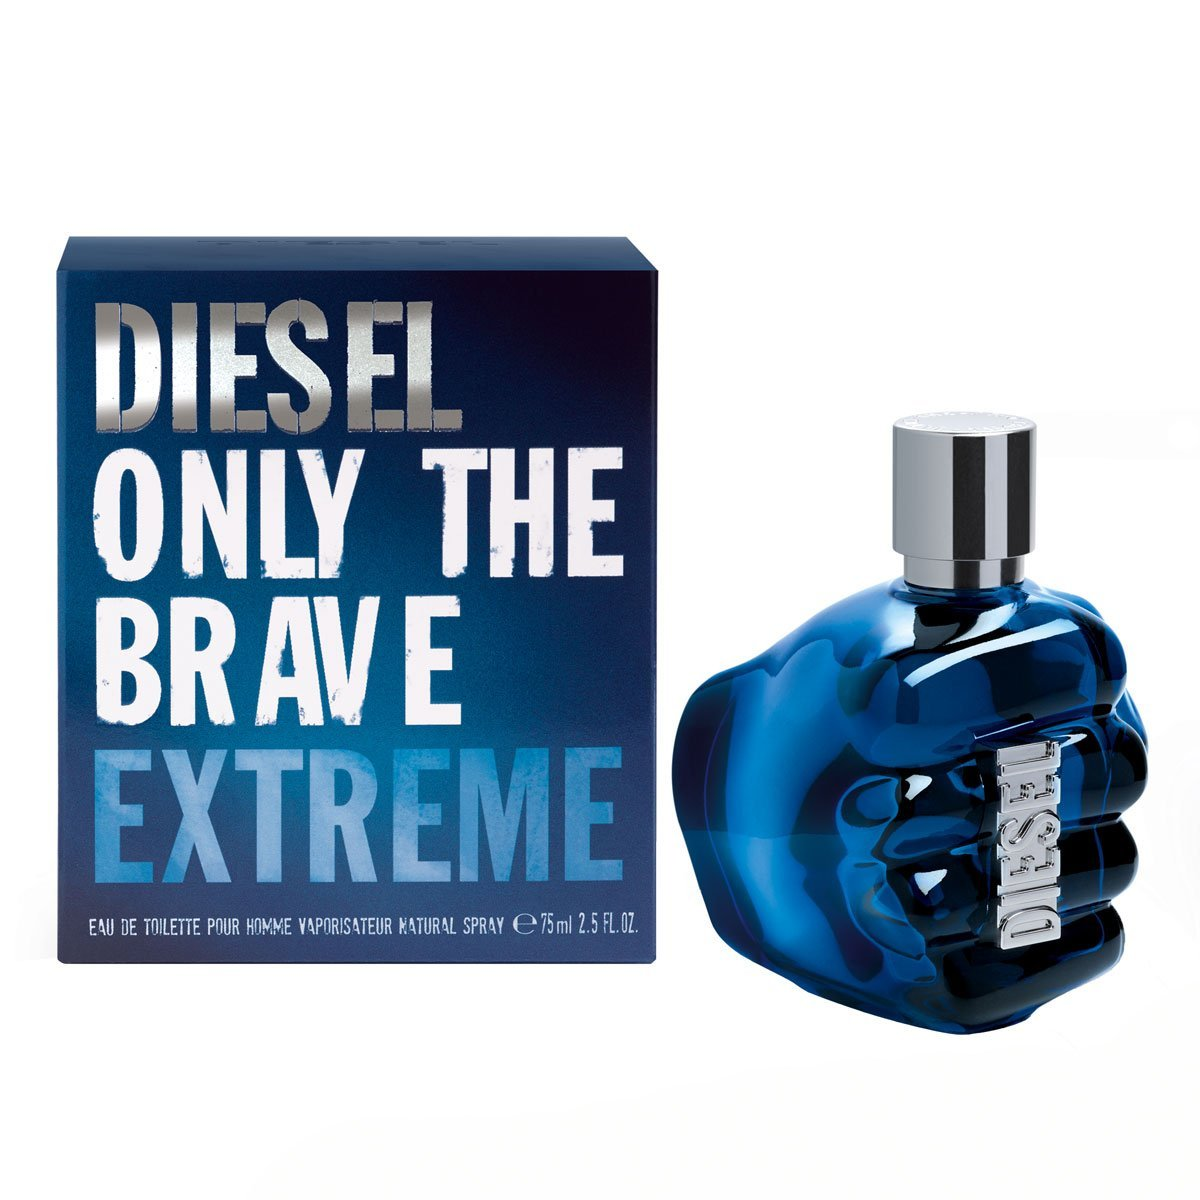 Diesel Only the Brave Extreme (EDT,Men,75ml) T-MLX20524 Vīriešu Smaržas